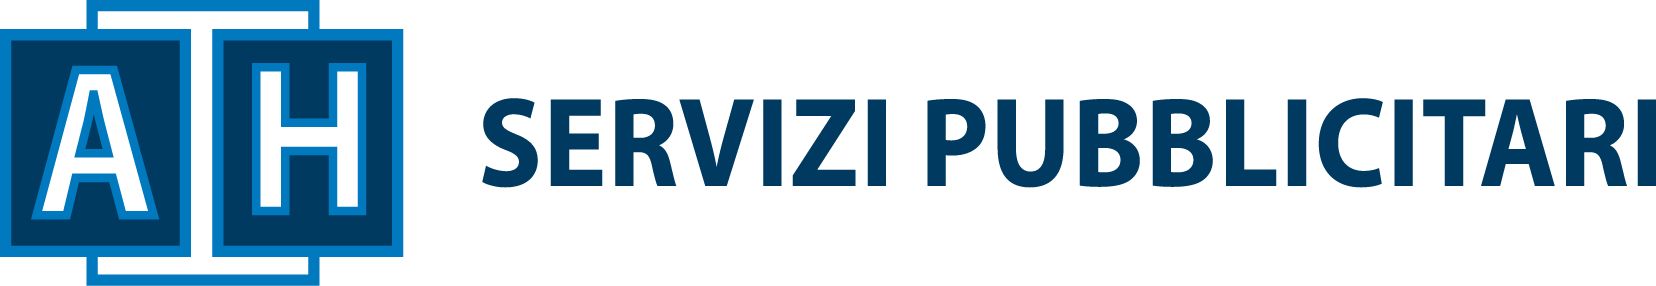 www.ahservizi.it